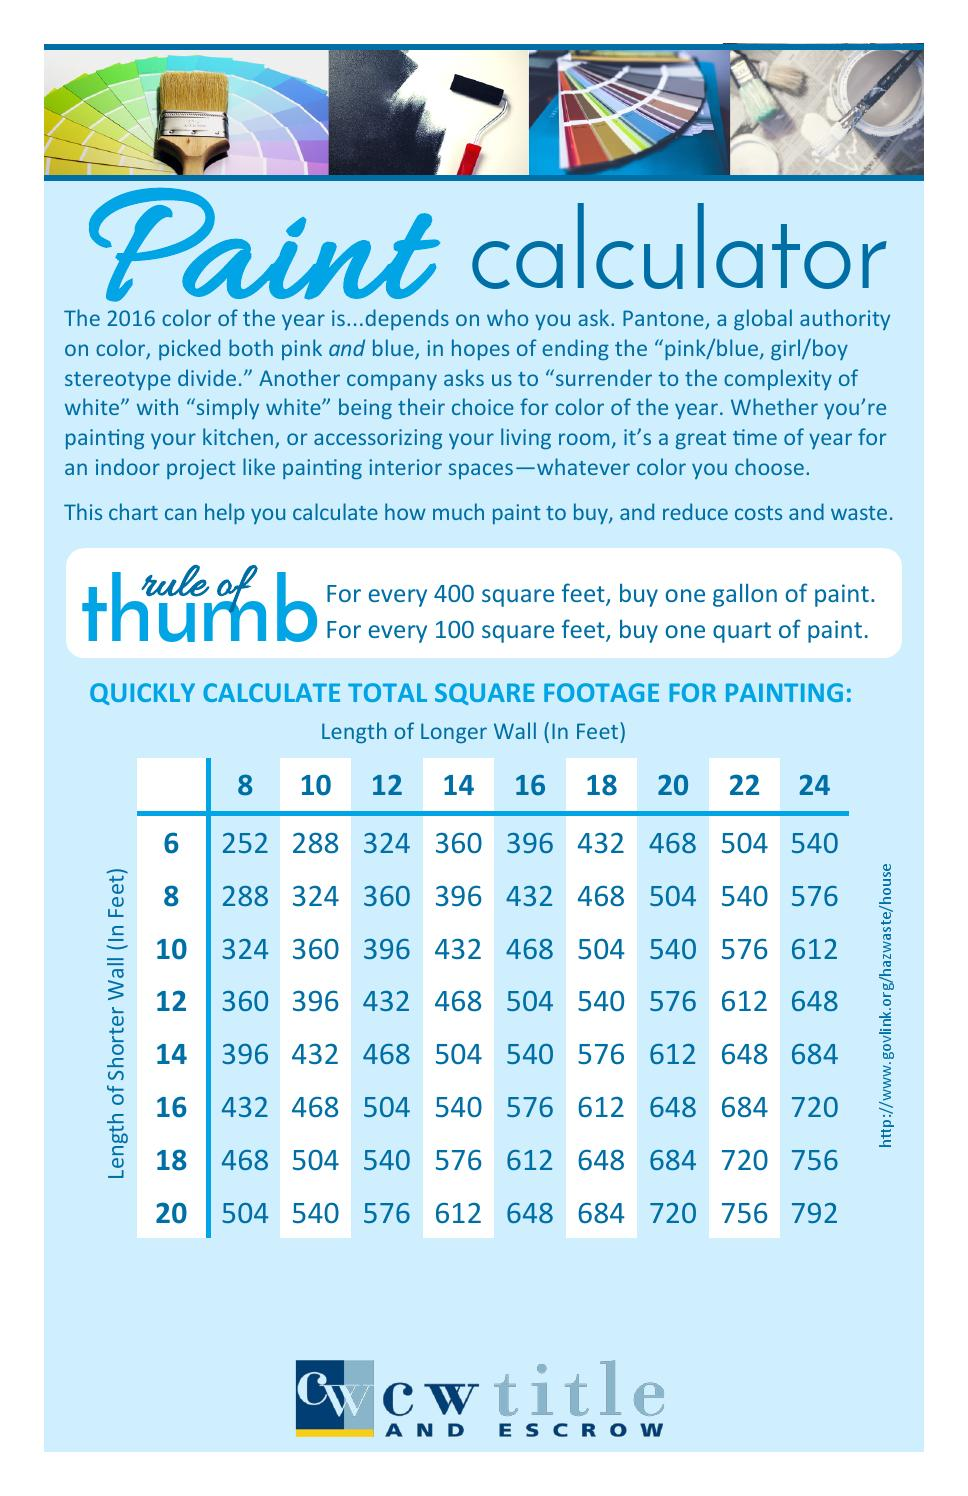 Handy paint calculator 2016 by cw title and escrow issuu for Interior painting cost per square foot calculator